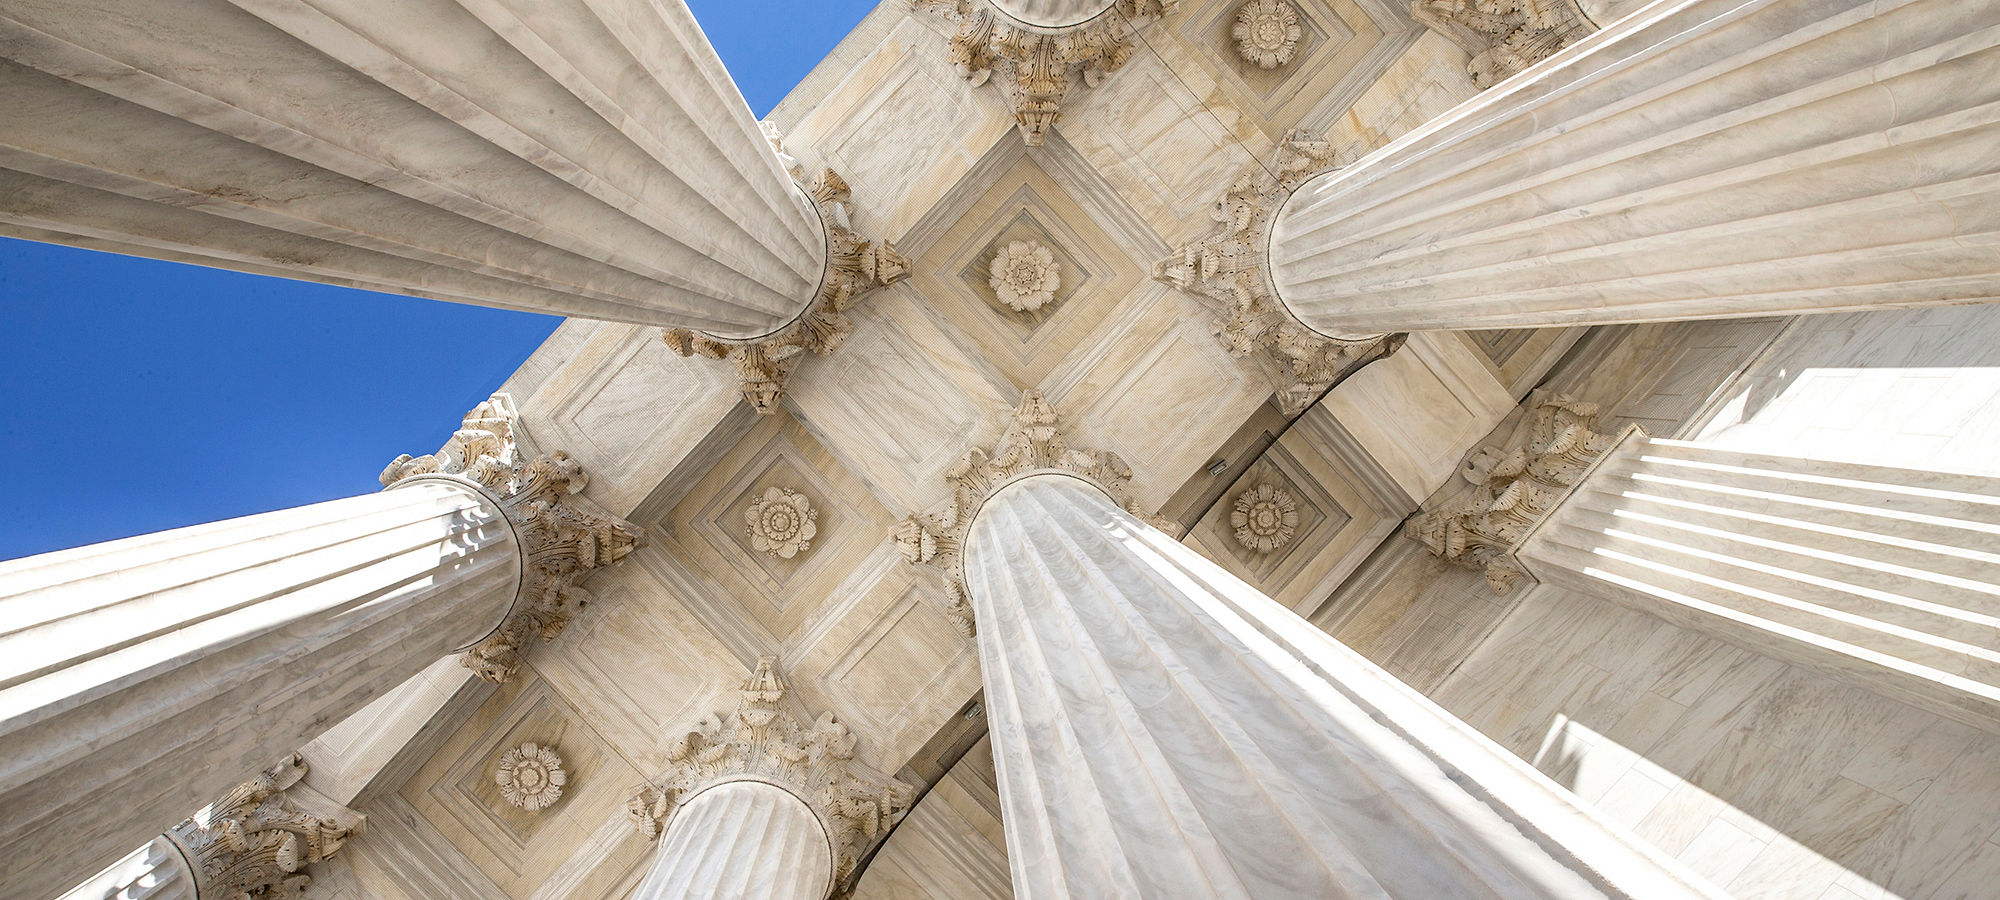 US Supreme Court Columns from underneath offering an unusual perspective